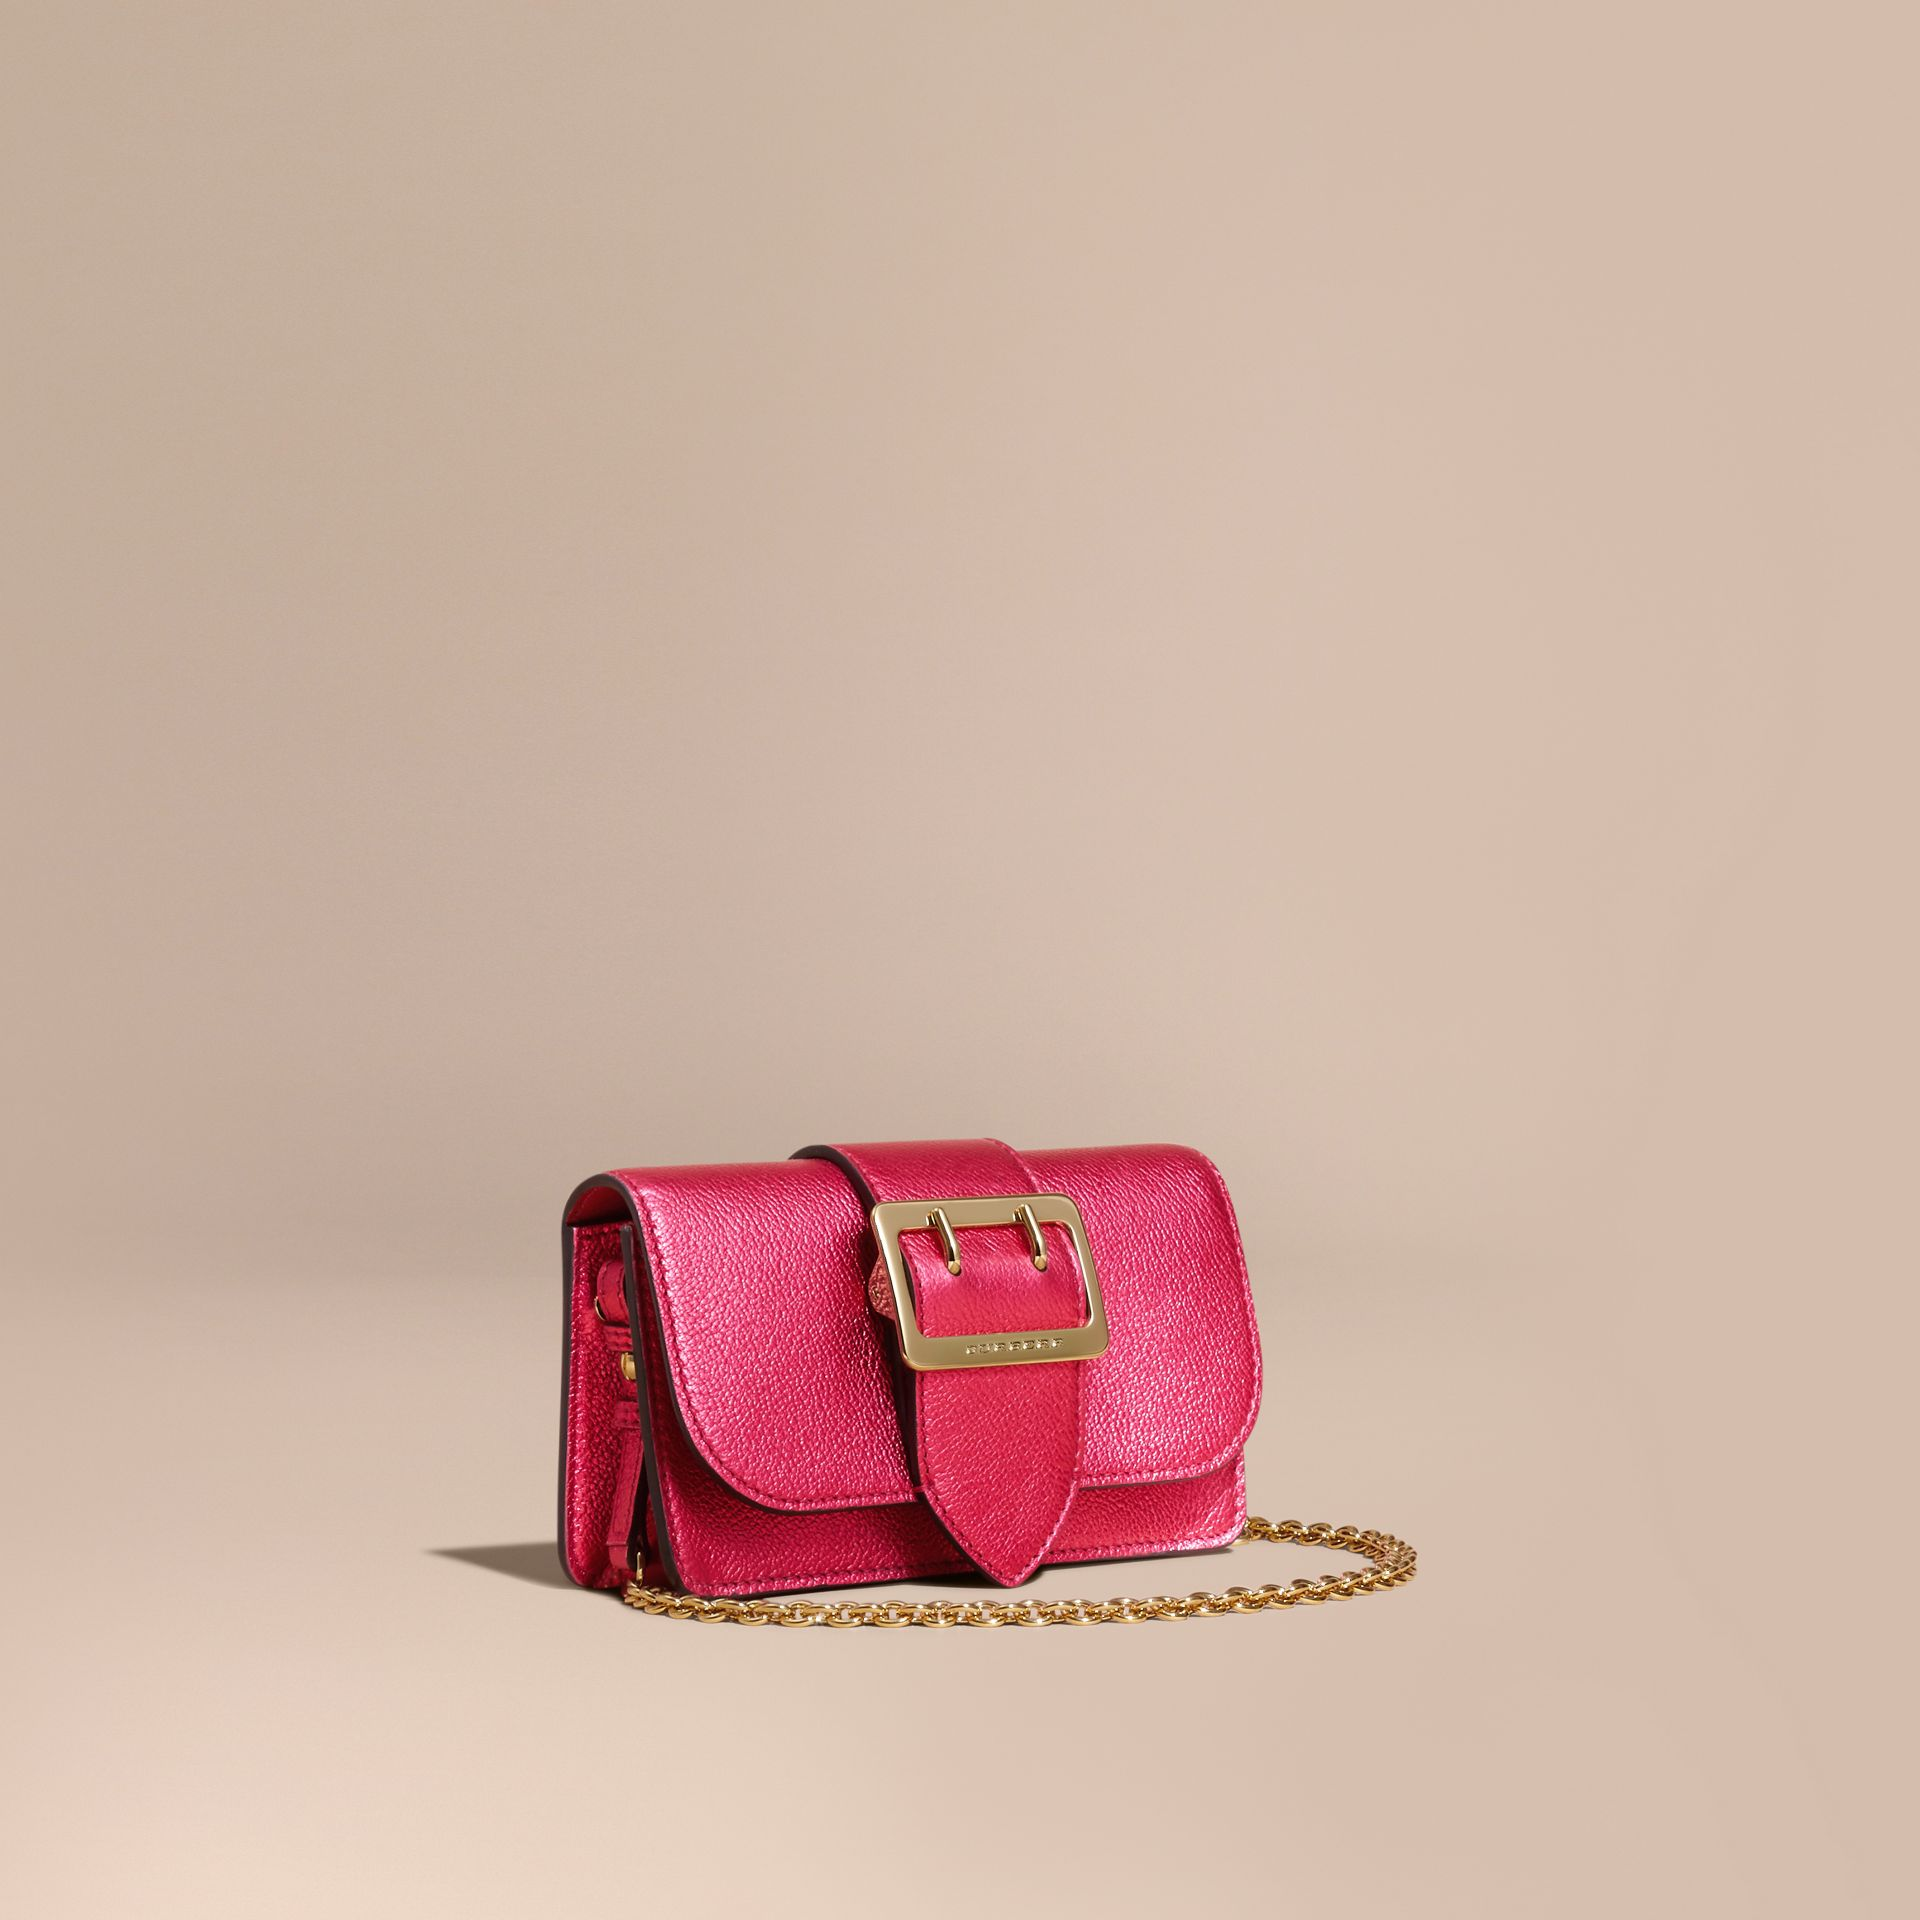 The Mini Buckle Bag in Metallic Grainy Leather in Bright Pink - gallery image 1